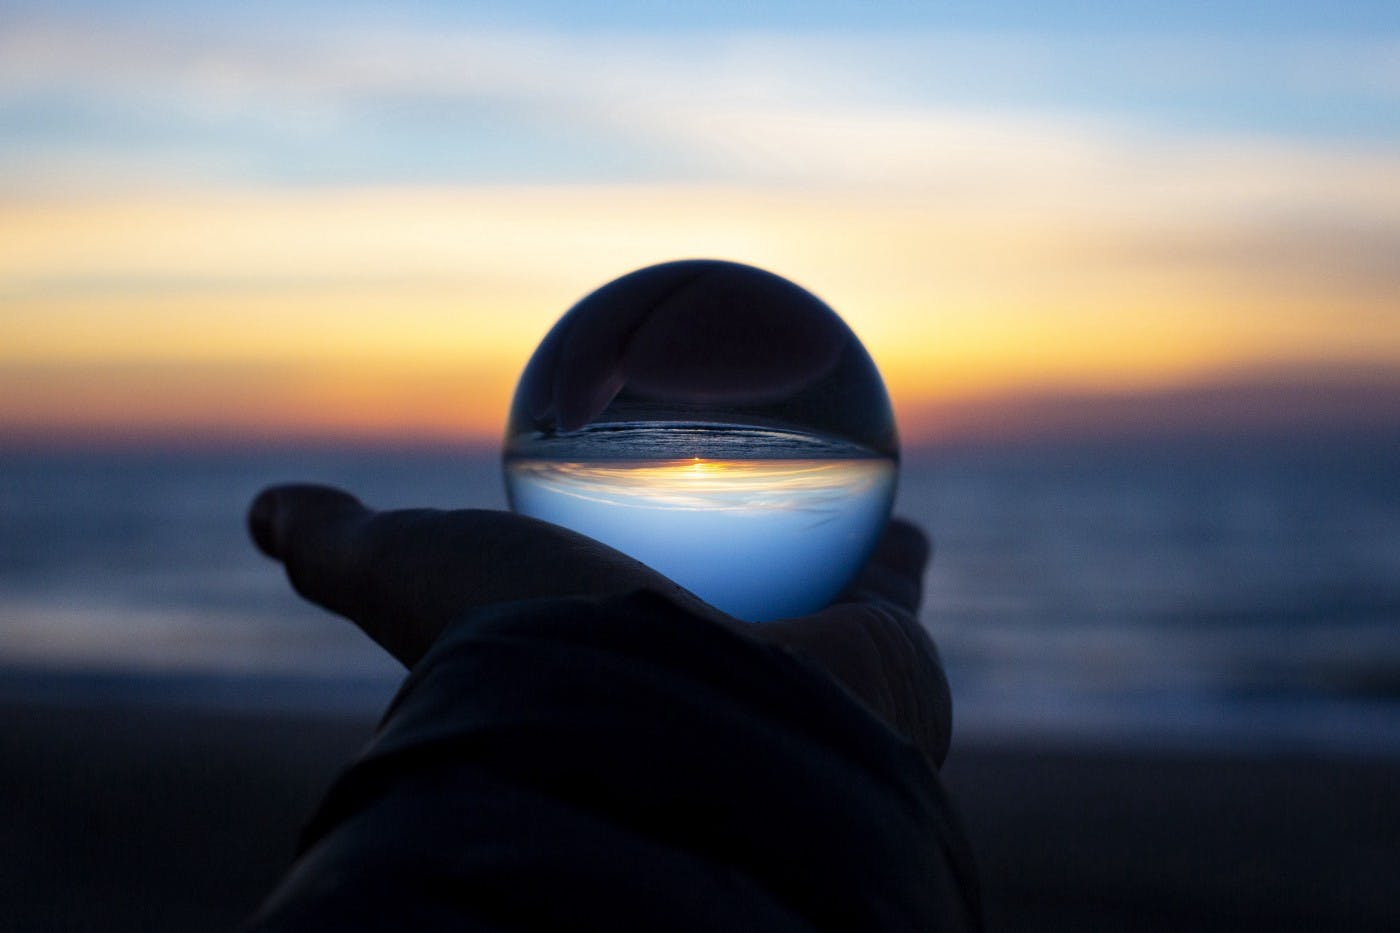 Image of a man holding out a glass ball in front of a sunset.